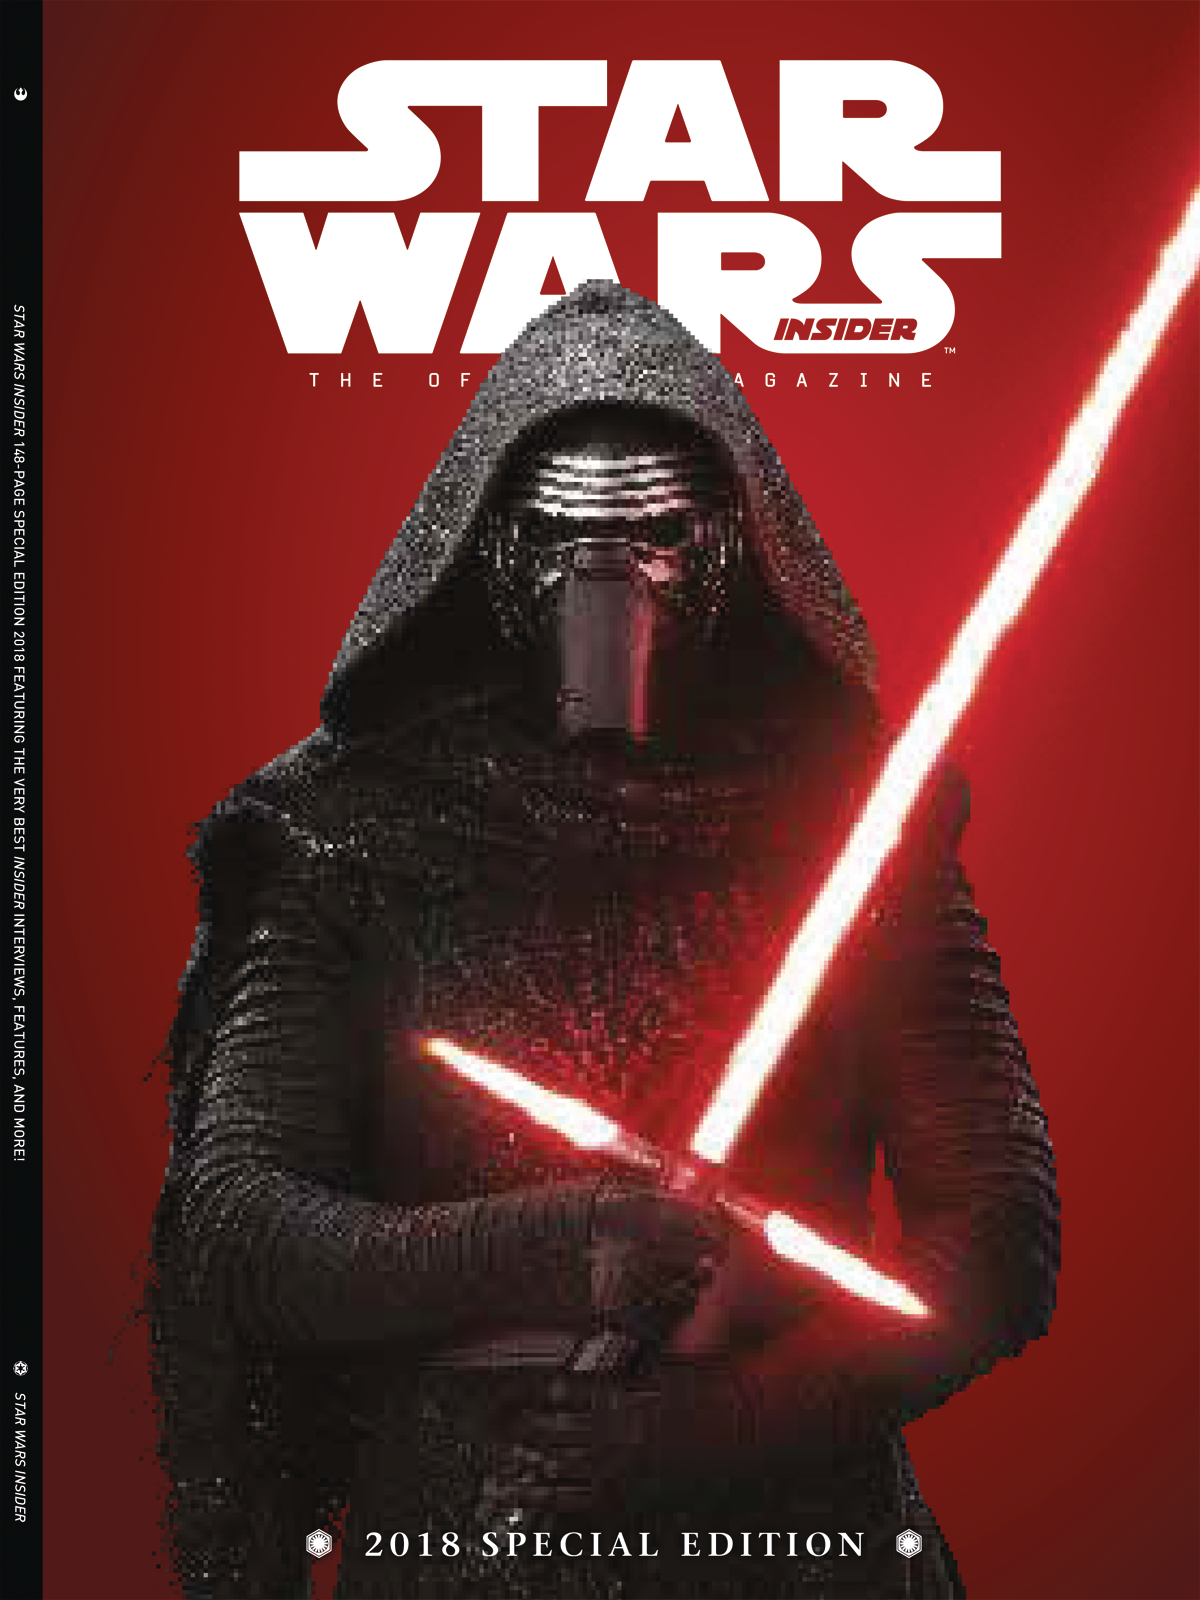 All upcoming books and. Darth vader clipart doth image freeuse library